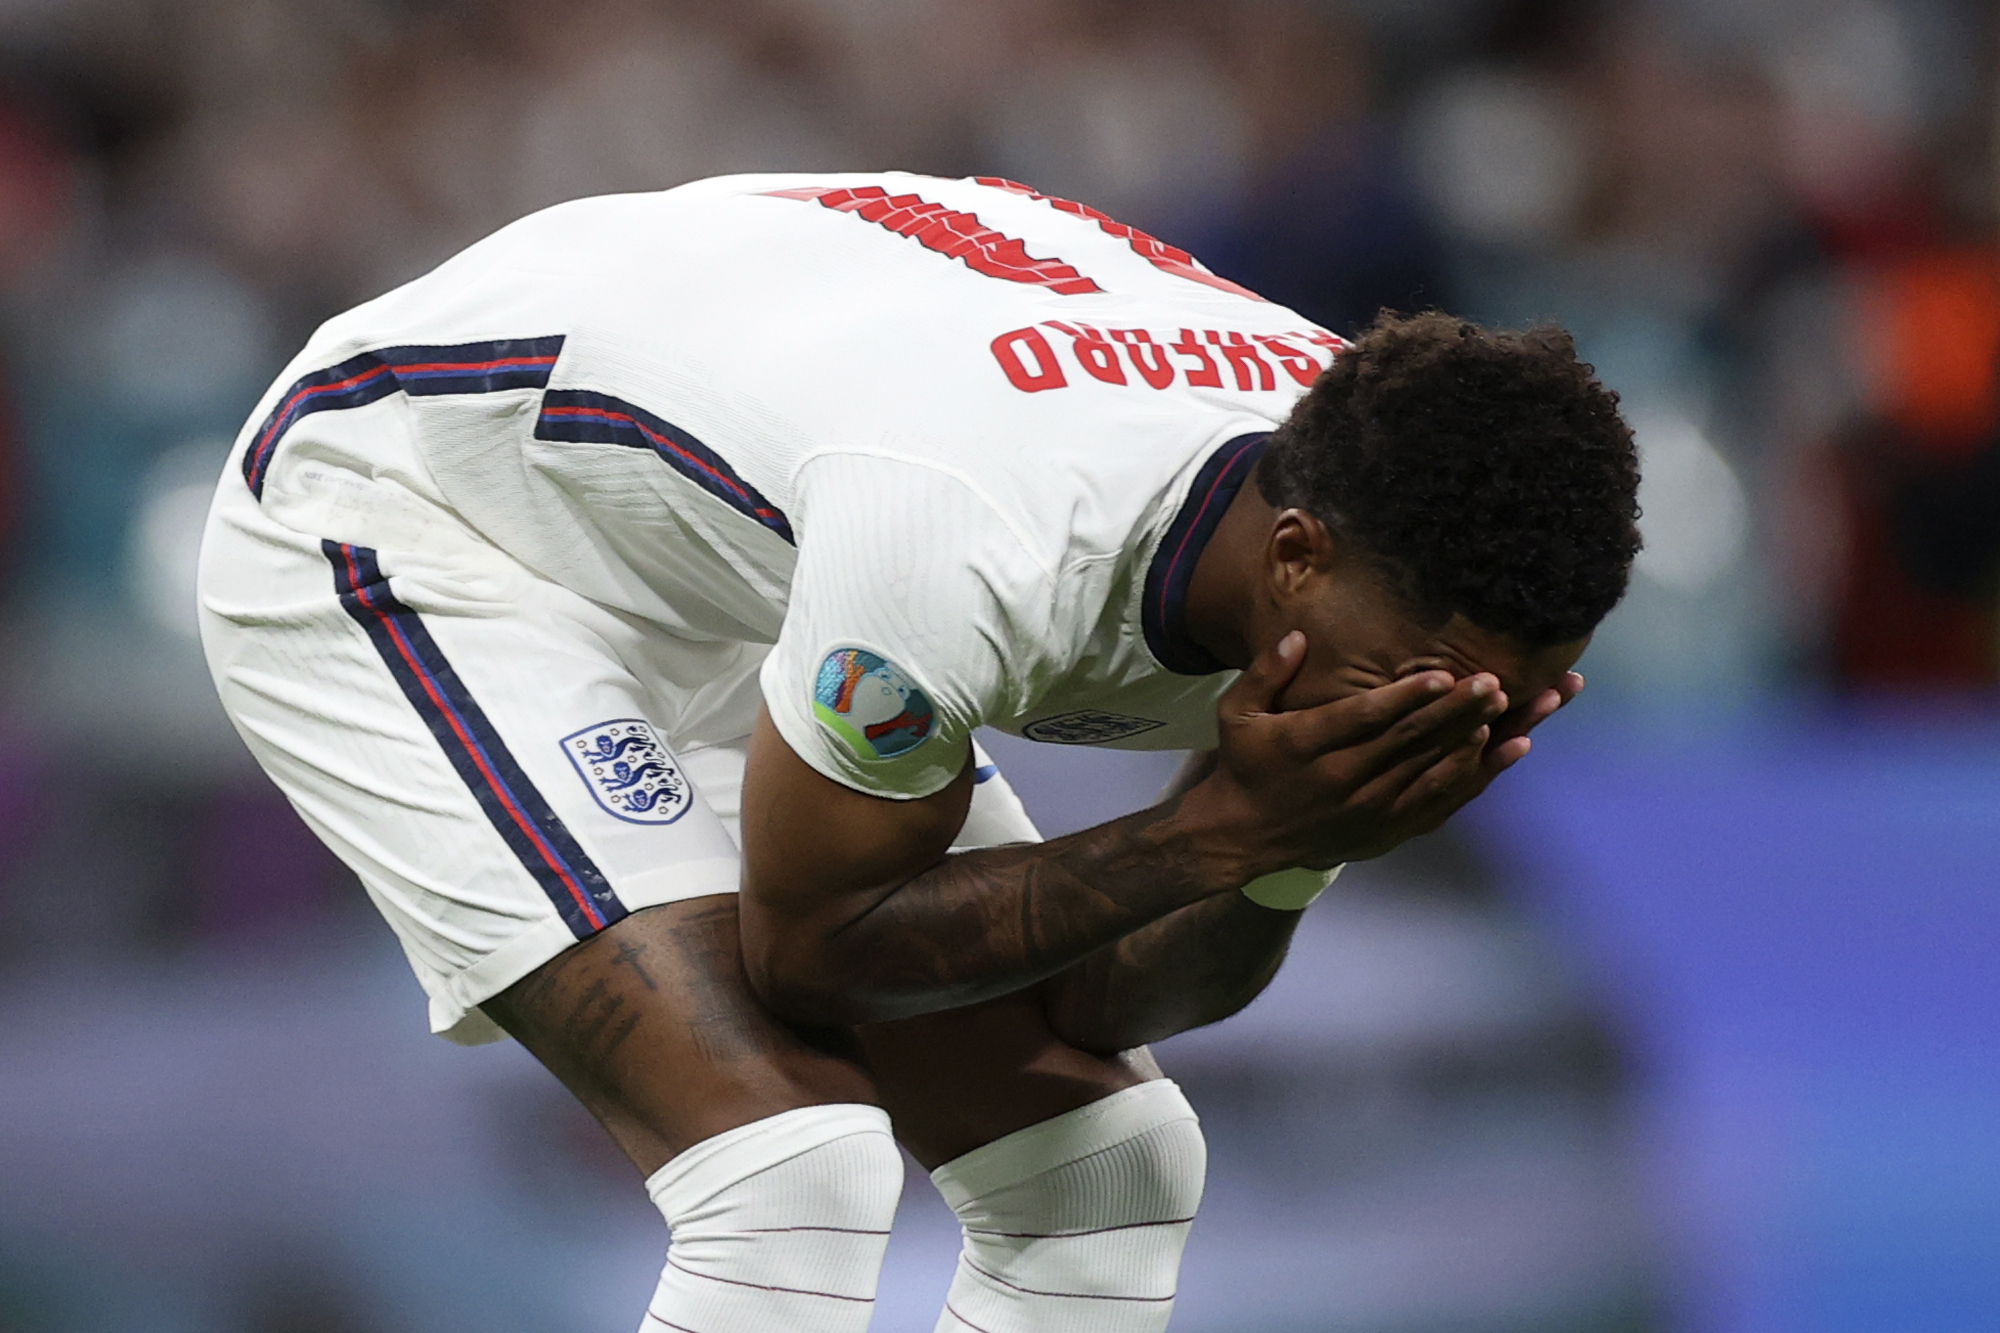 England's Marcus Rashford reacts after failing to score a penalty during a shootout at the end of the Euro 2020 soccer championship final match between England and Italy at Wembley stadium in London, Sunday, July 11, 2021.